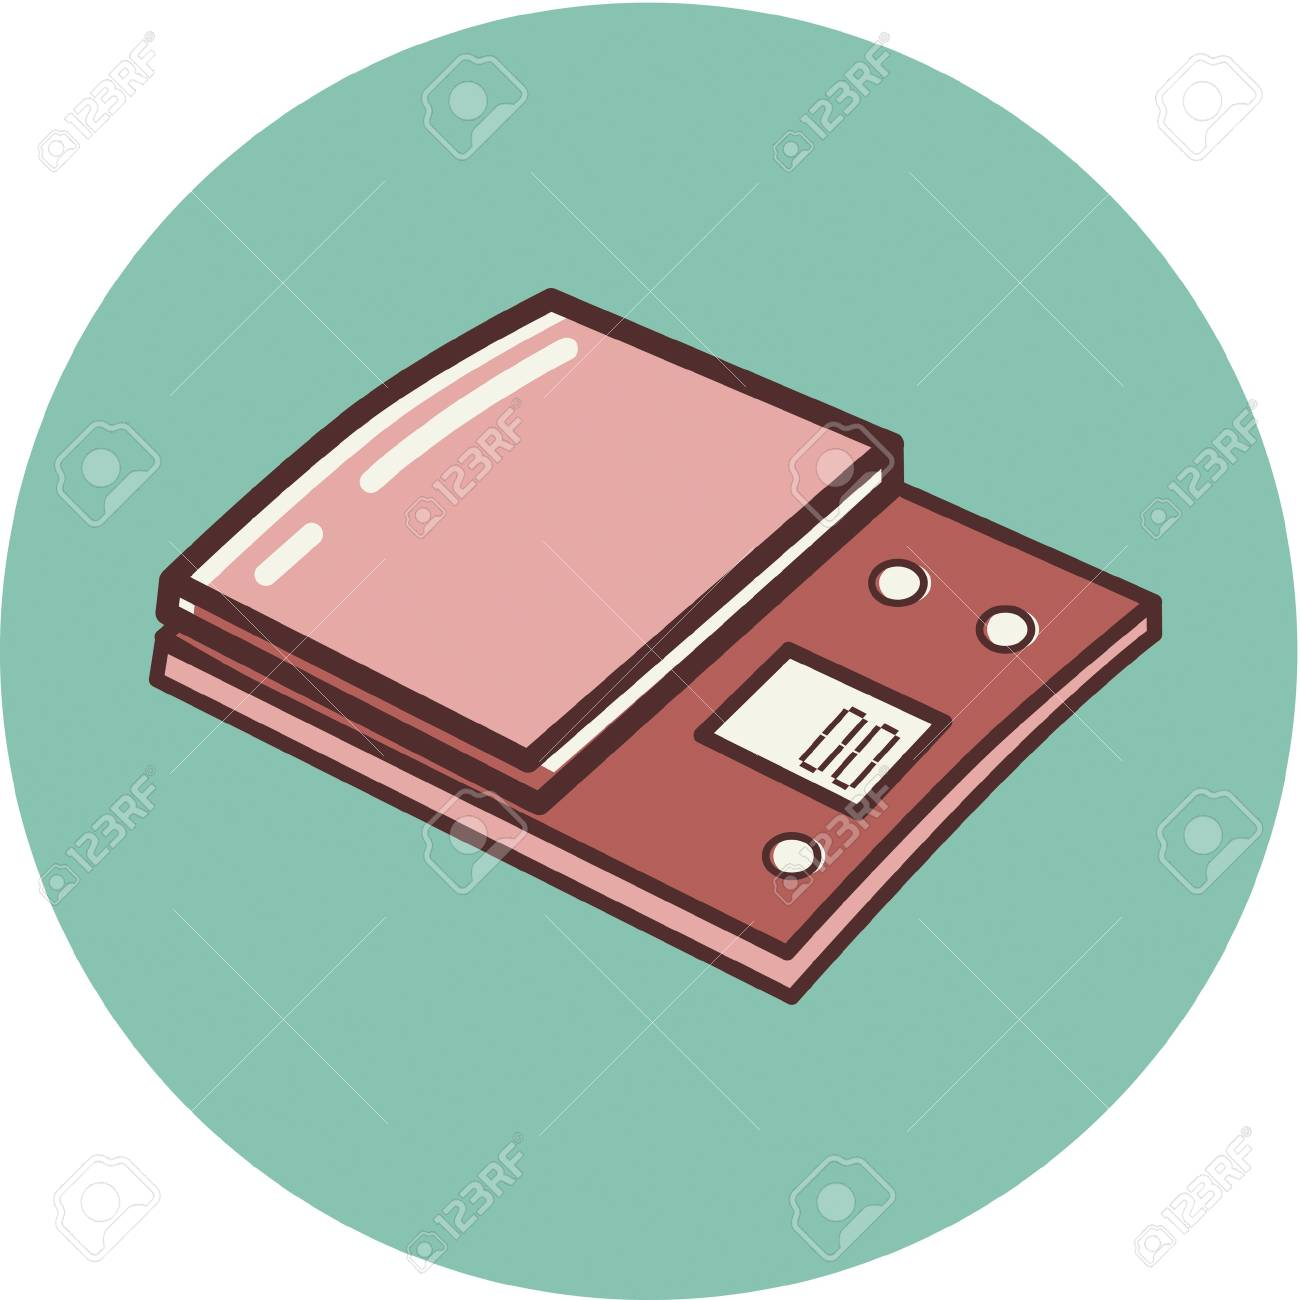 Illustration of a scale on a blue background Stock Photo - 14865139